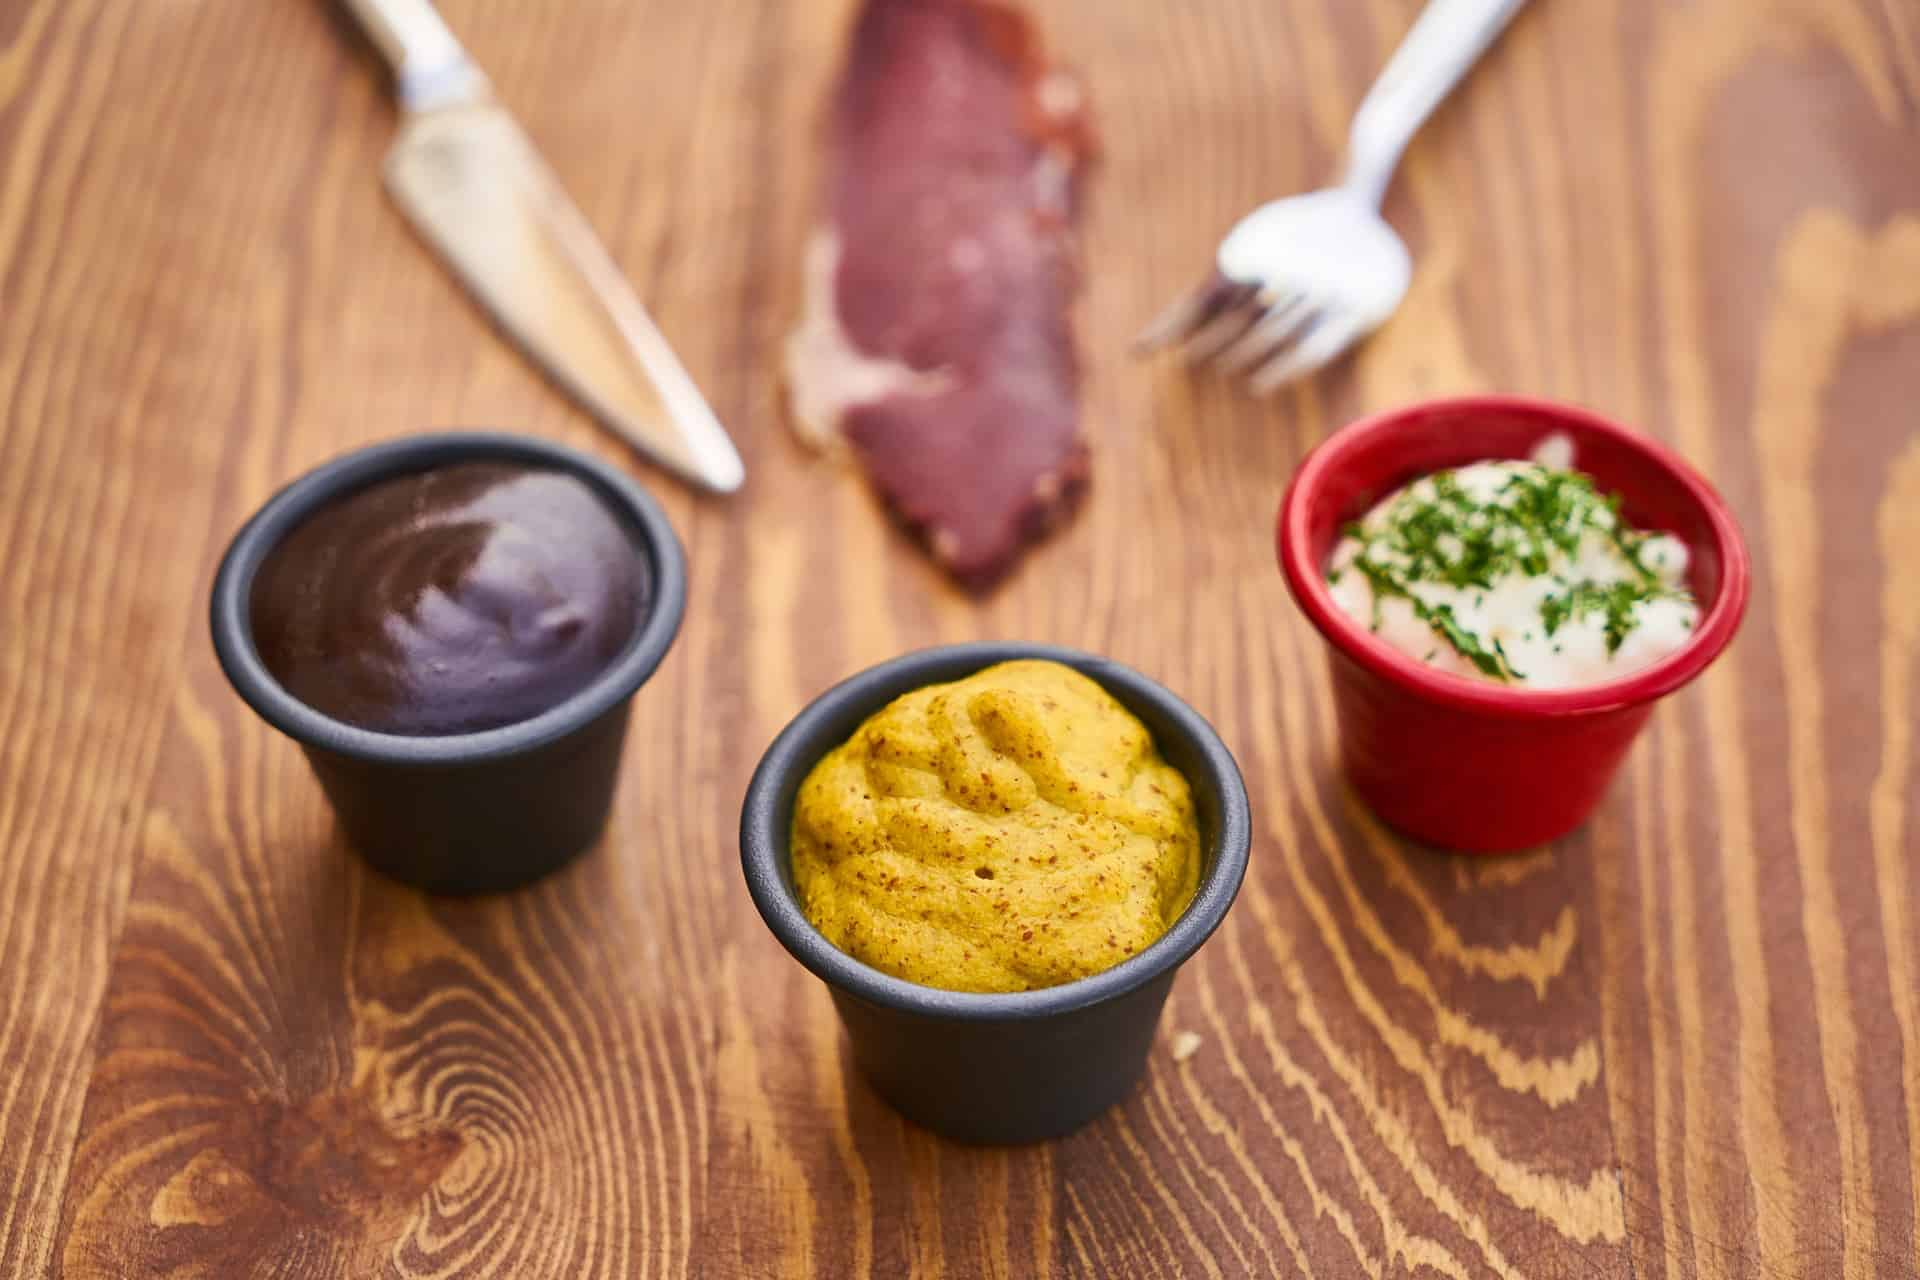 a mustard sauce along with other two sauces